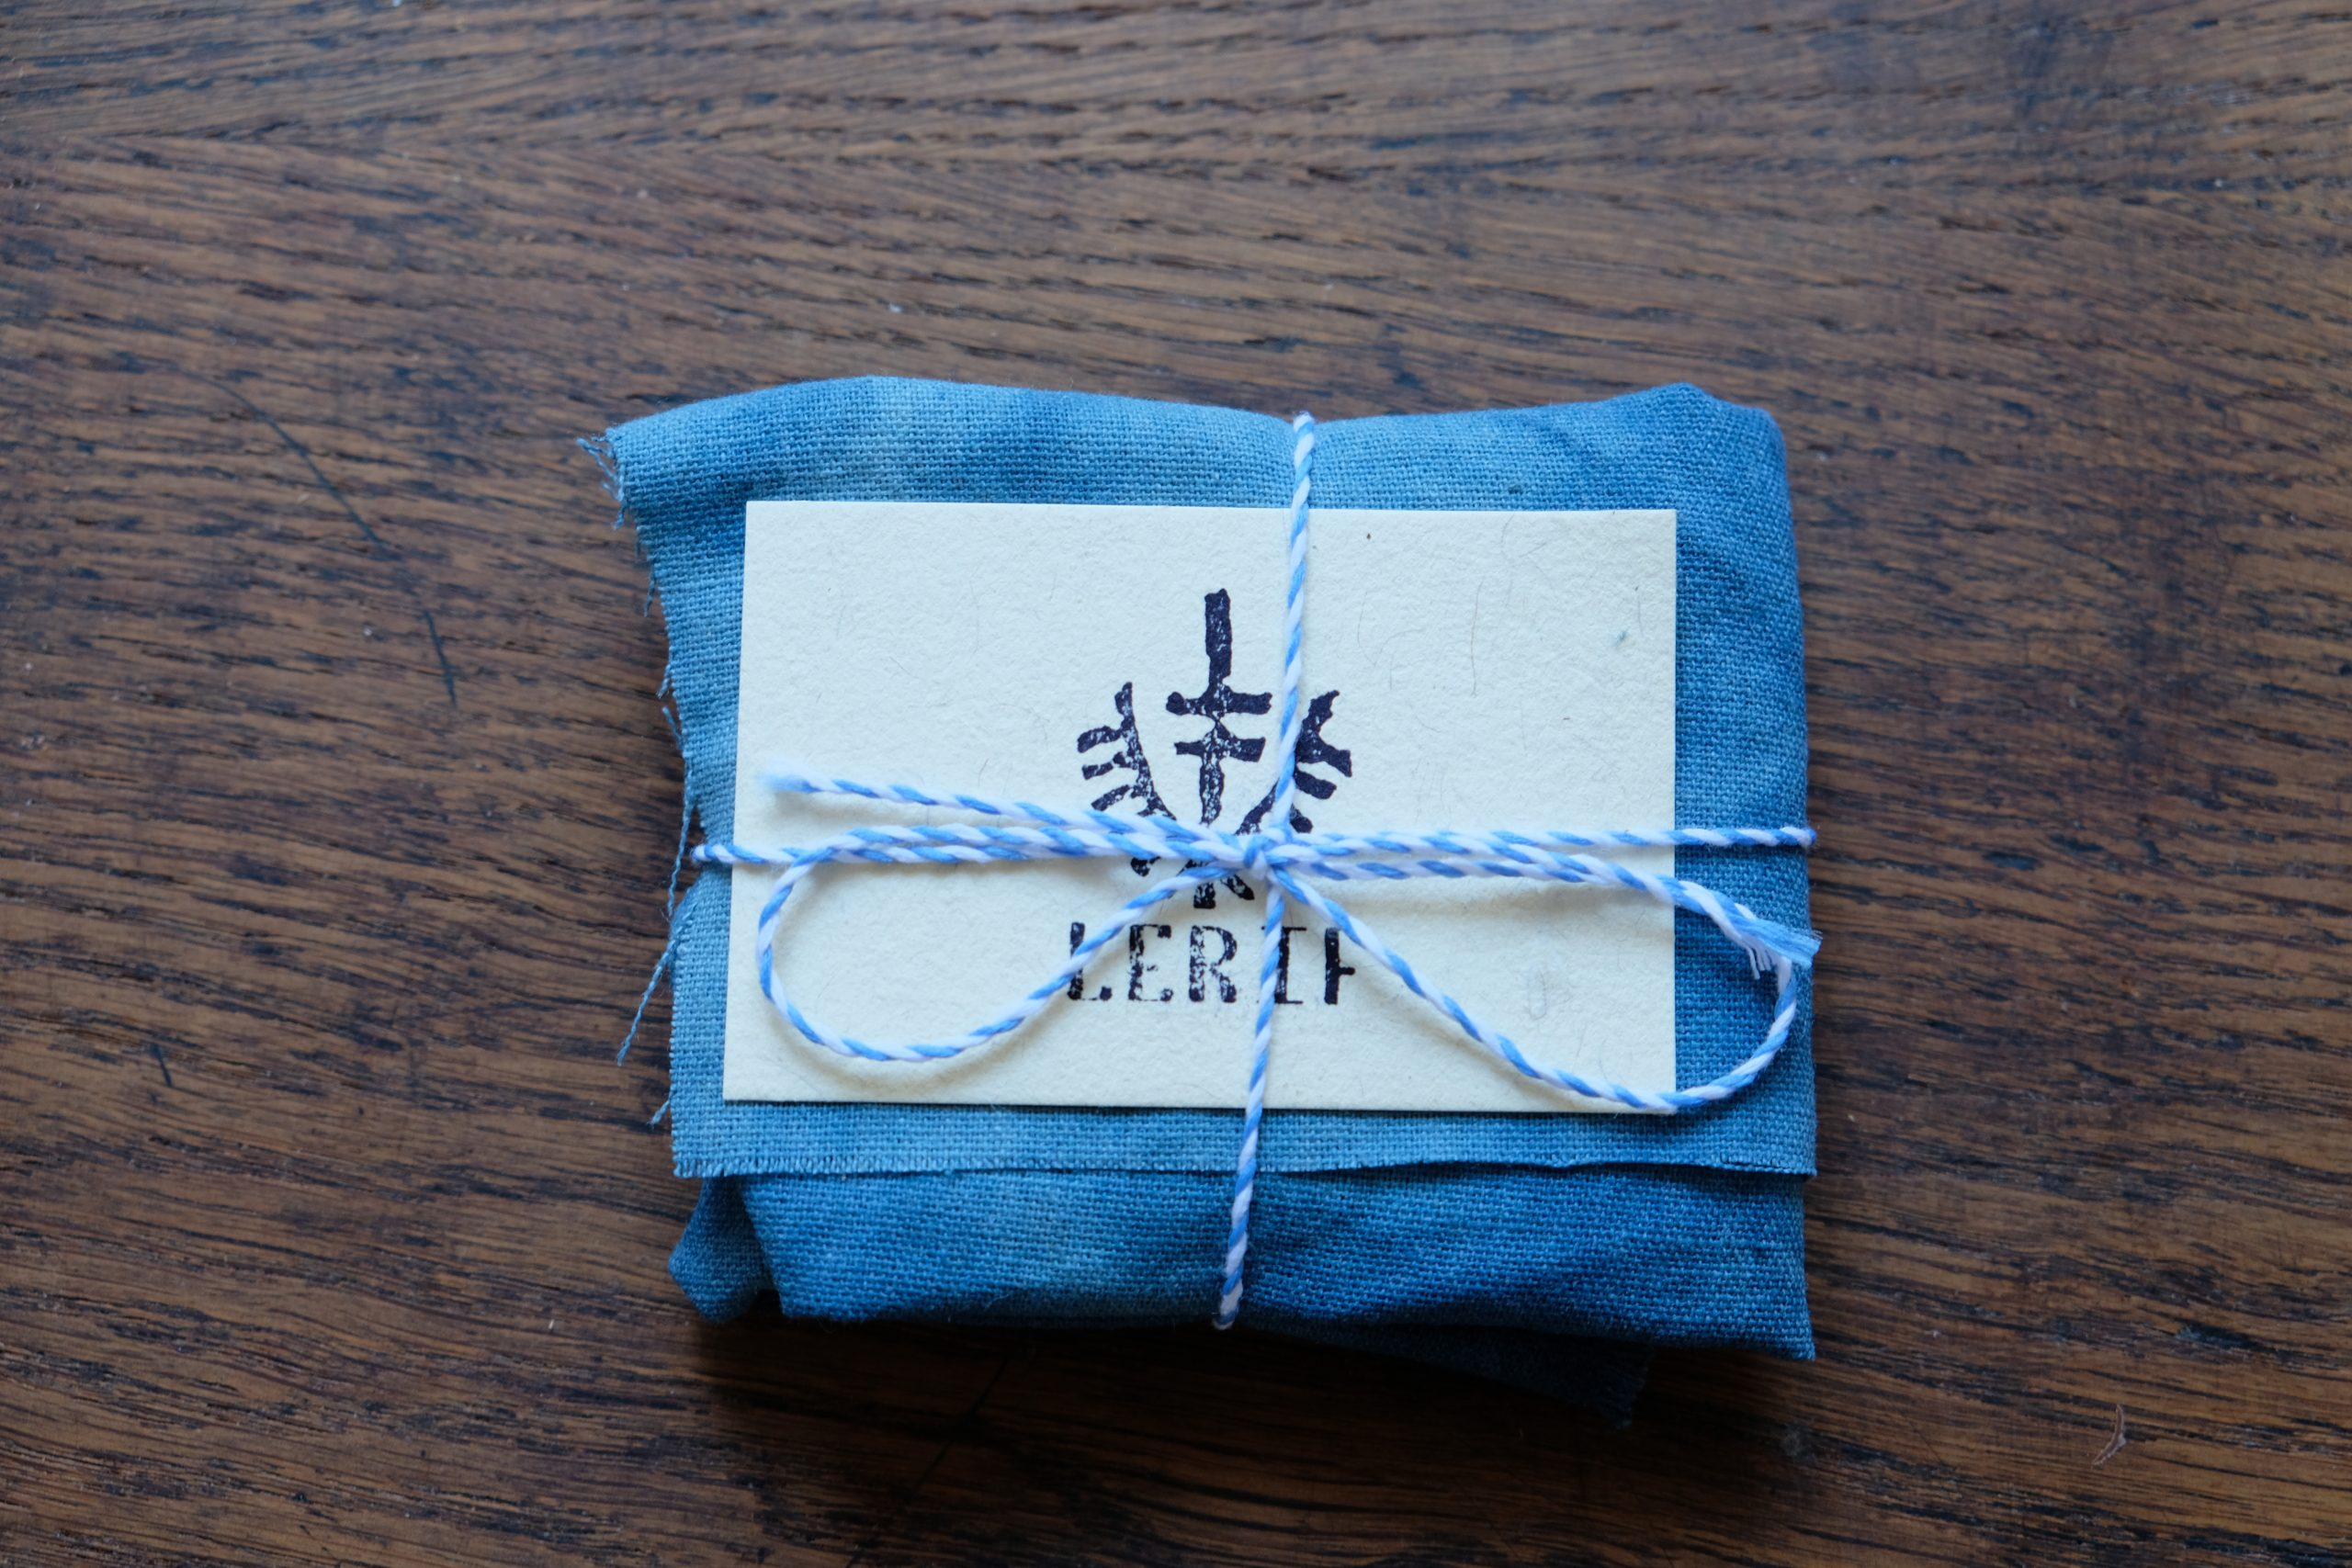 Lerif Designs leather goods packaging wrapped in indigo cloth with blue string and calling card